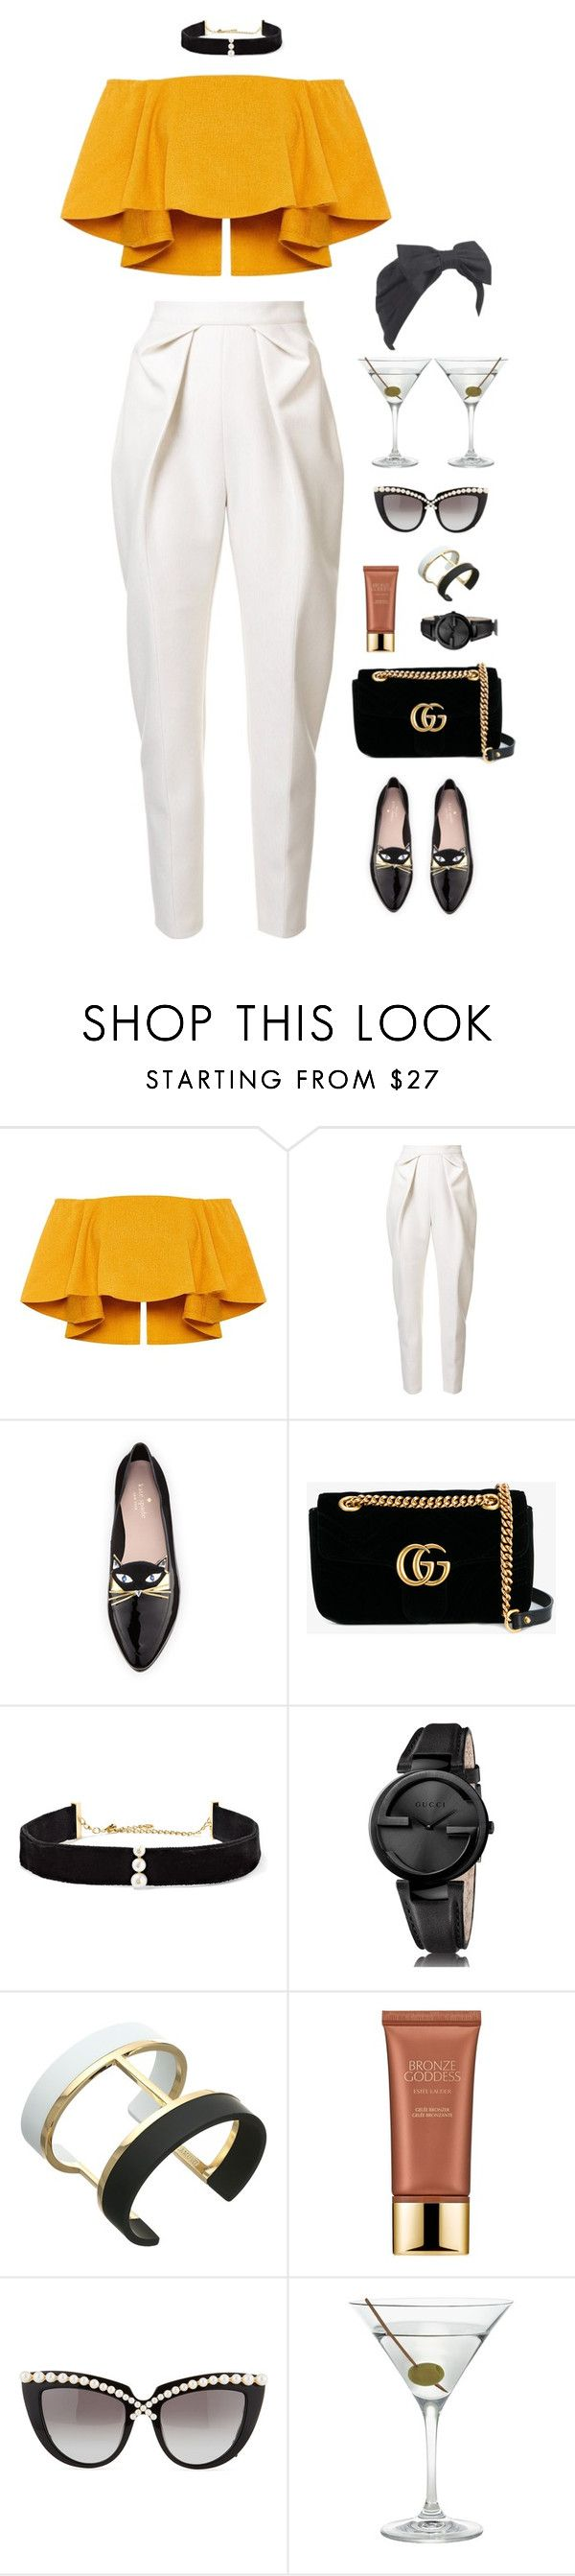 """""""Invisible Tan Lines"""" by xoxomuty ❤ liked on Polyvore featuring Delpozo, Kate Spade, Gucci, Anissa Kermiche, Vince Camuto, Estée Lauder, Anna-Karin Karlsson, Nordstrom, Beauxoxo and polyvoreOOTD"""